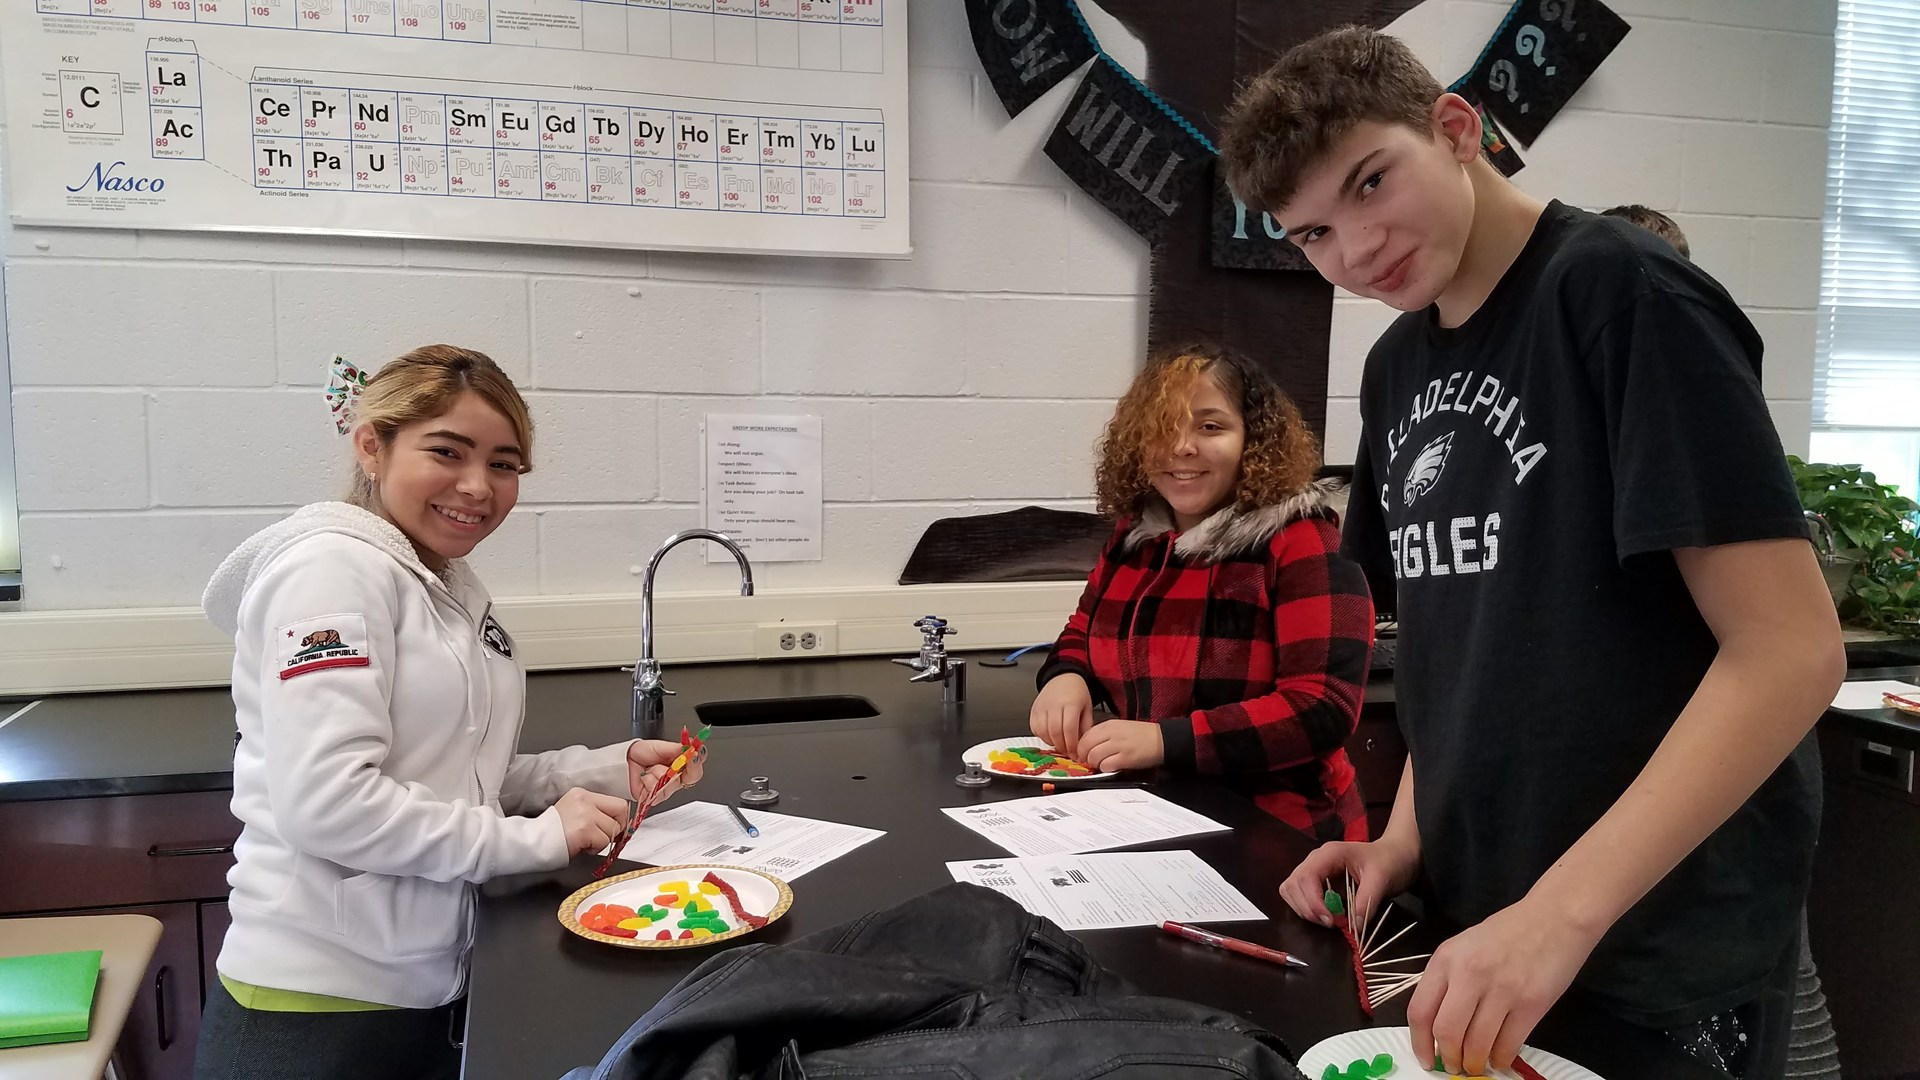 Diana, JoJo, and Stephon building DNA